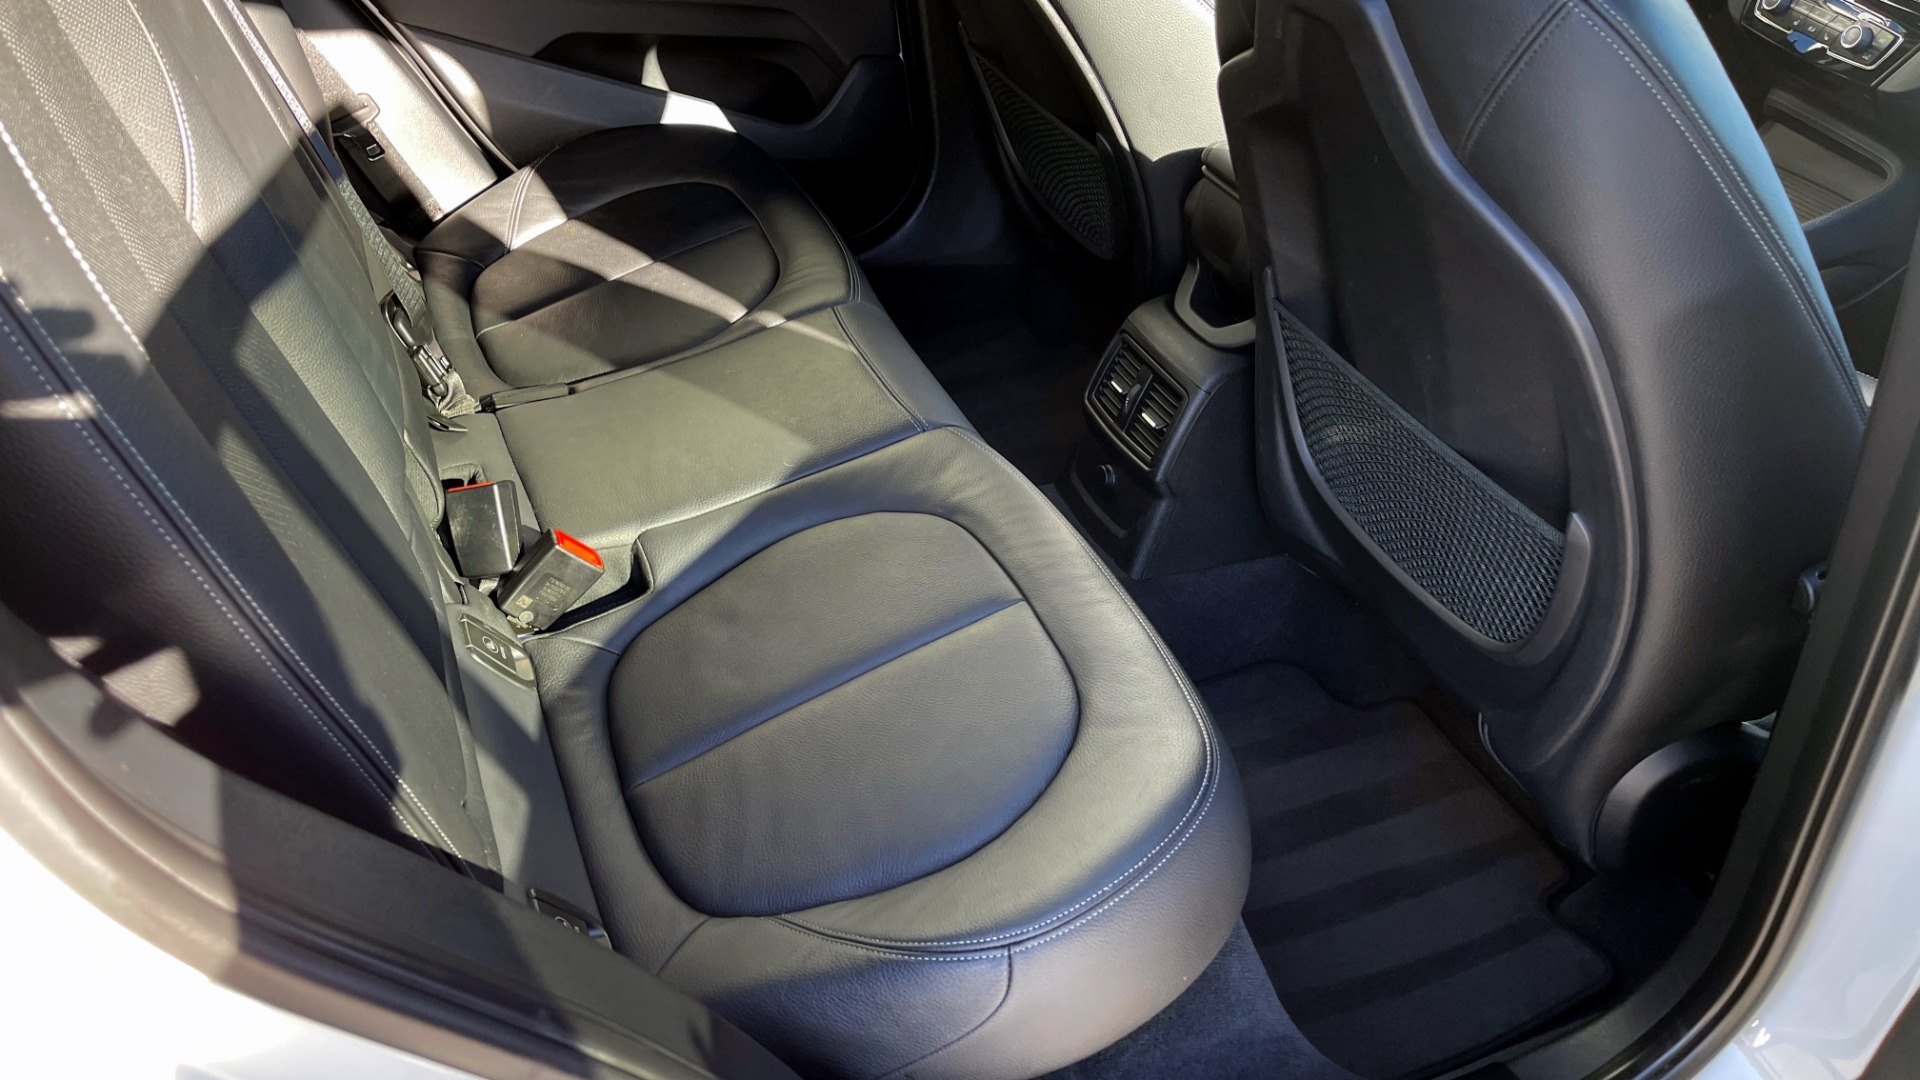 Used 2018 BMW X1 XDRIVE28I / CONV PKG / PANO-ROOF / PARK ASST / REARVIEW for sale $31,995 at Formula Imports in Charlotte NC 28227 51